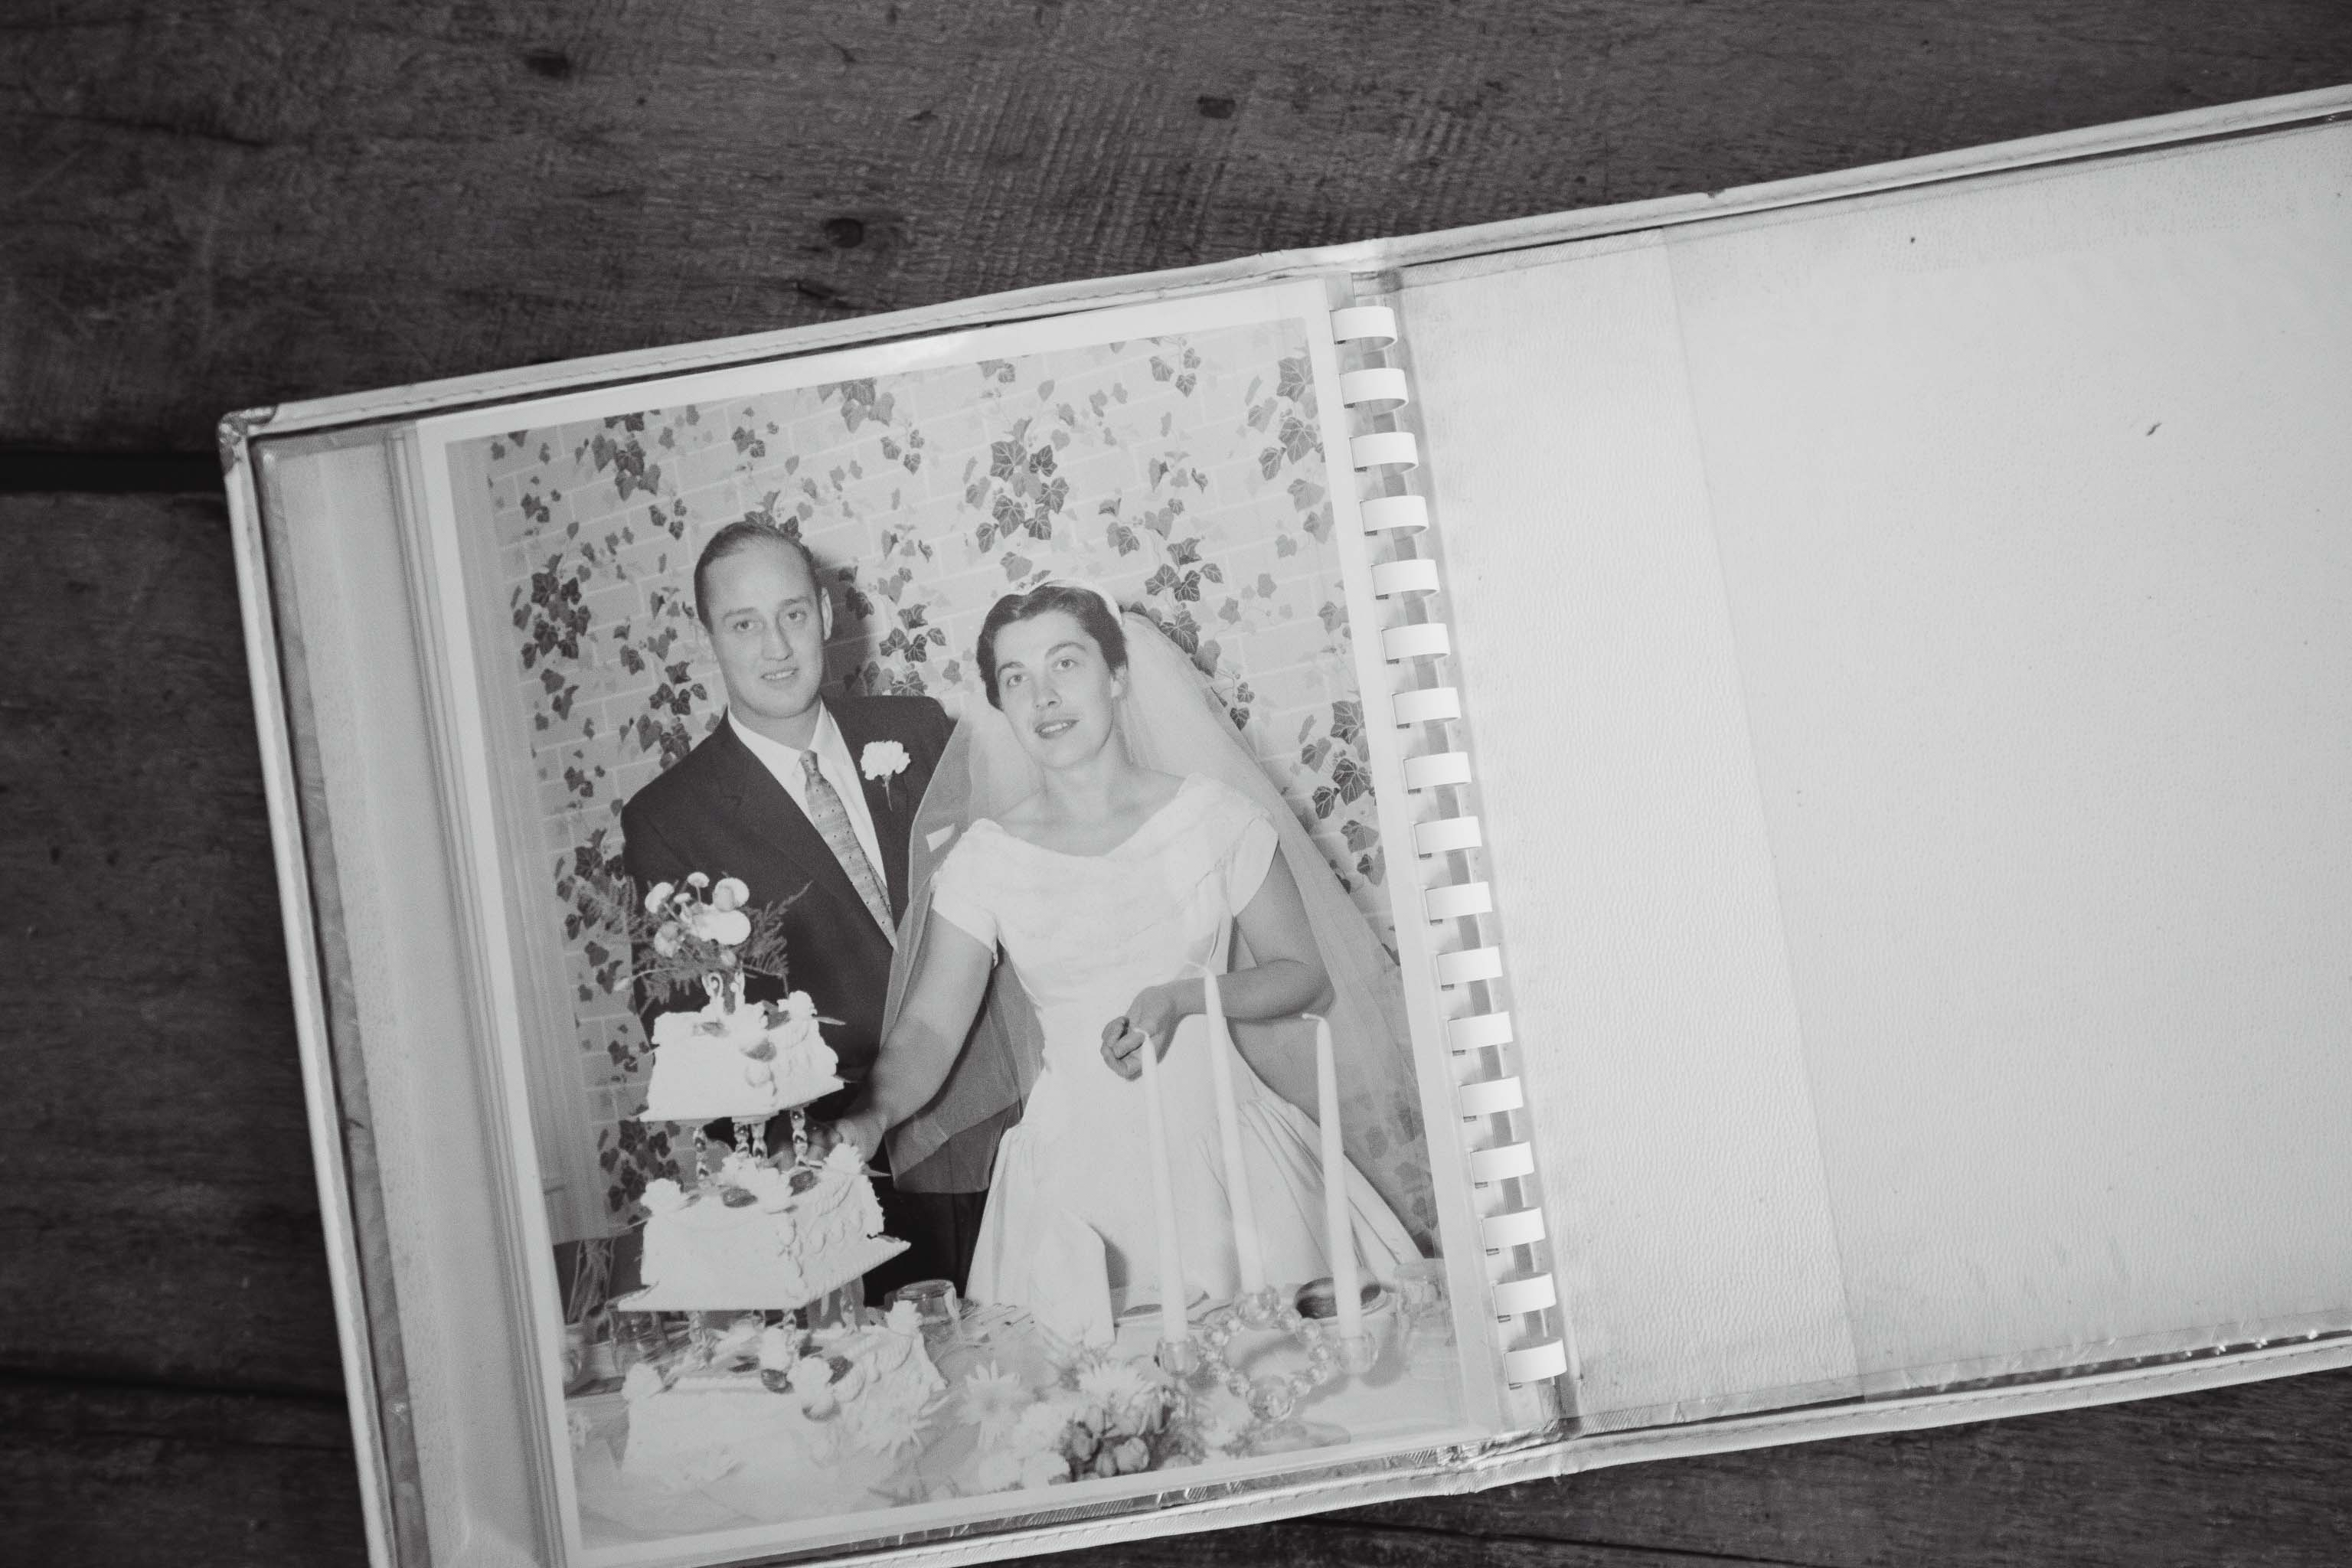 vintage wedding photography album